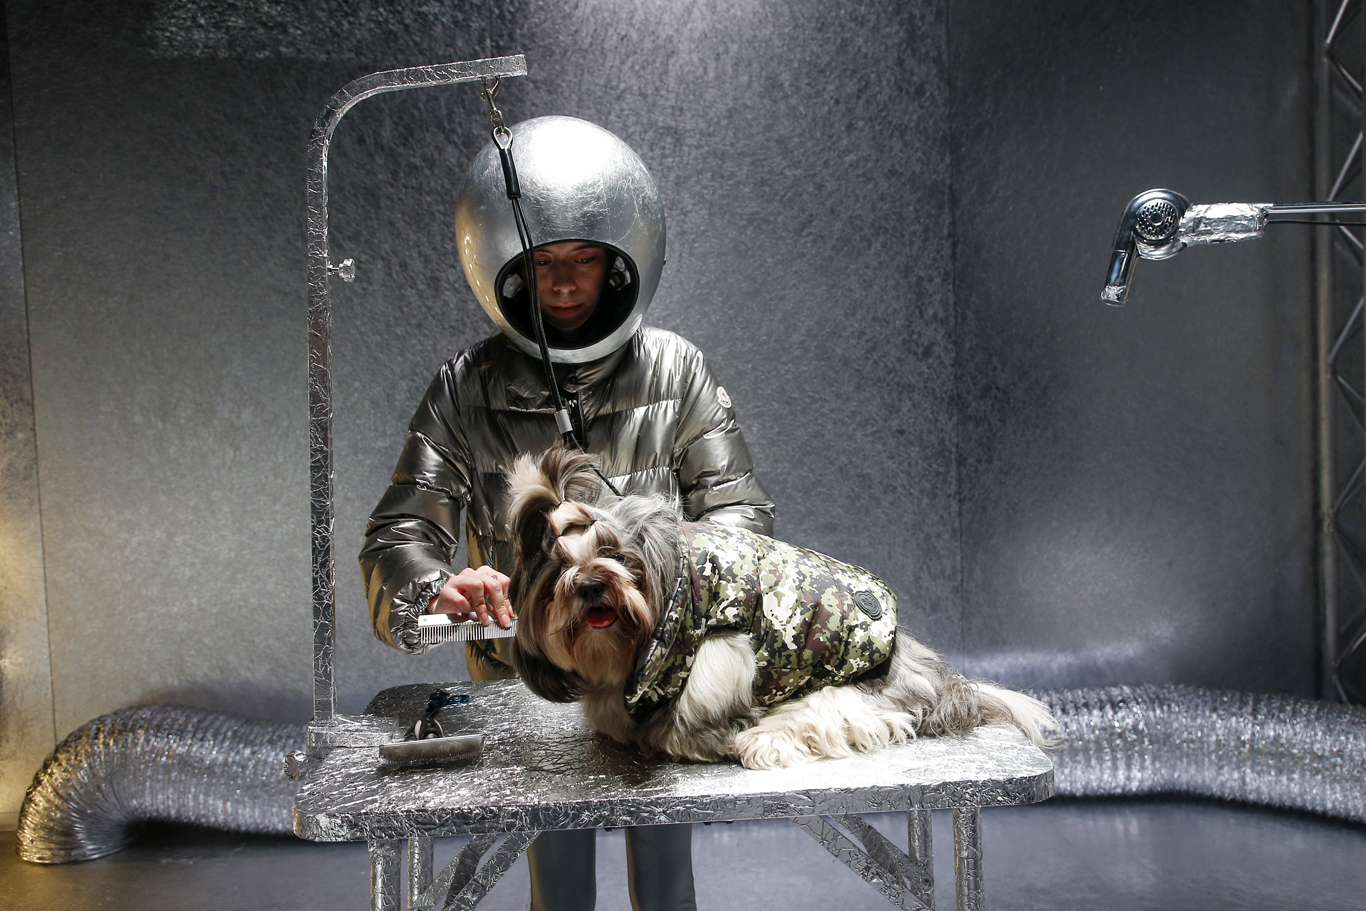 Moncler Genius x Poldo Dog Couture RTW Fall 2020